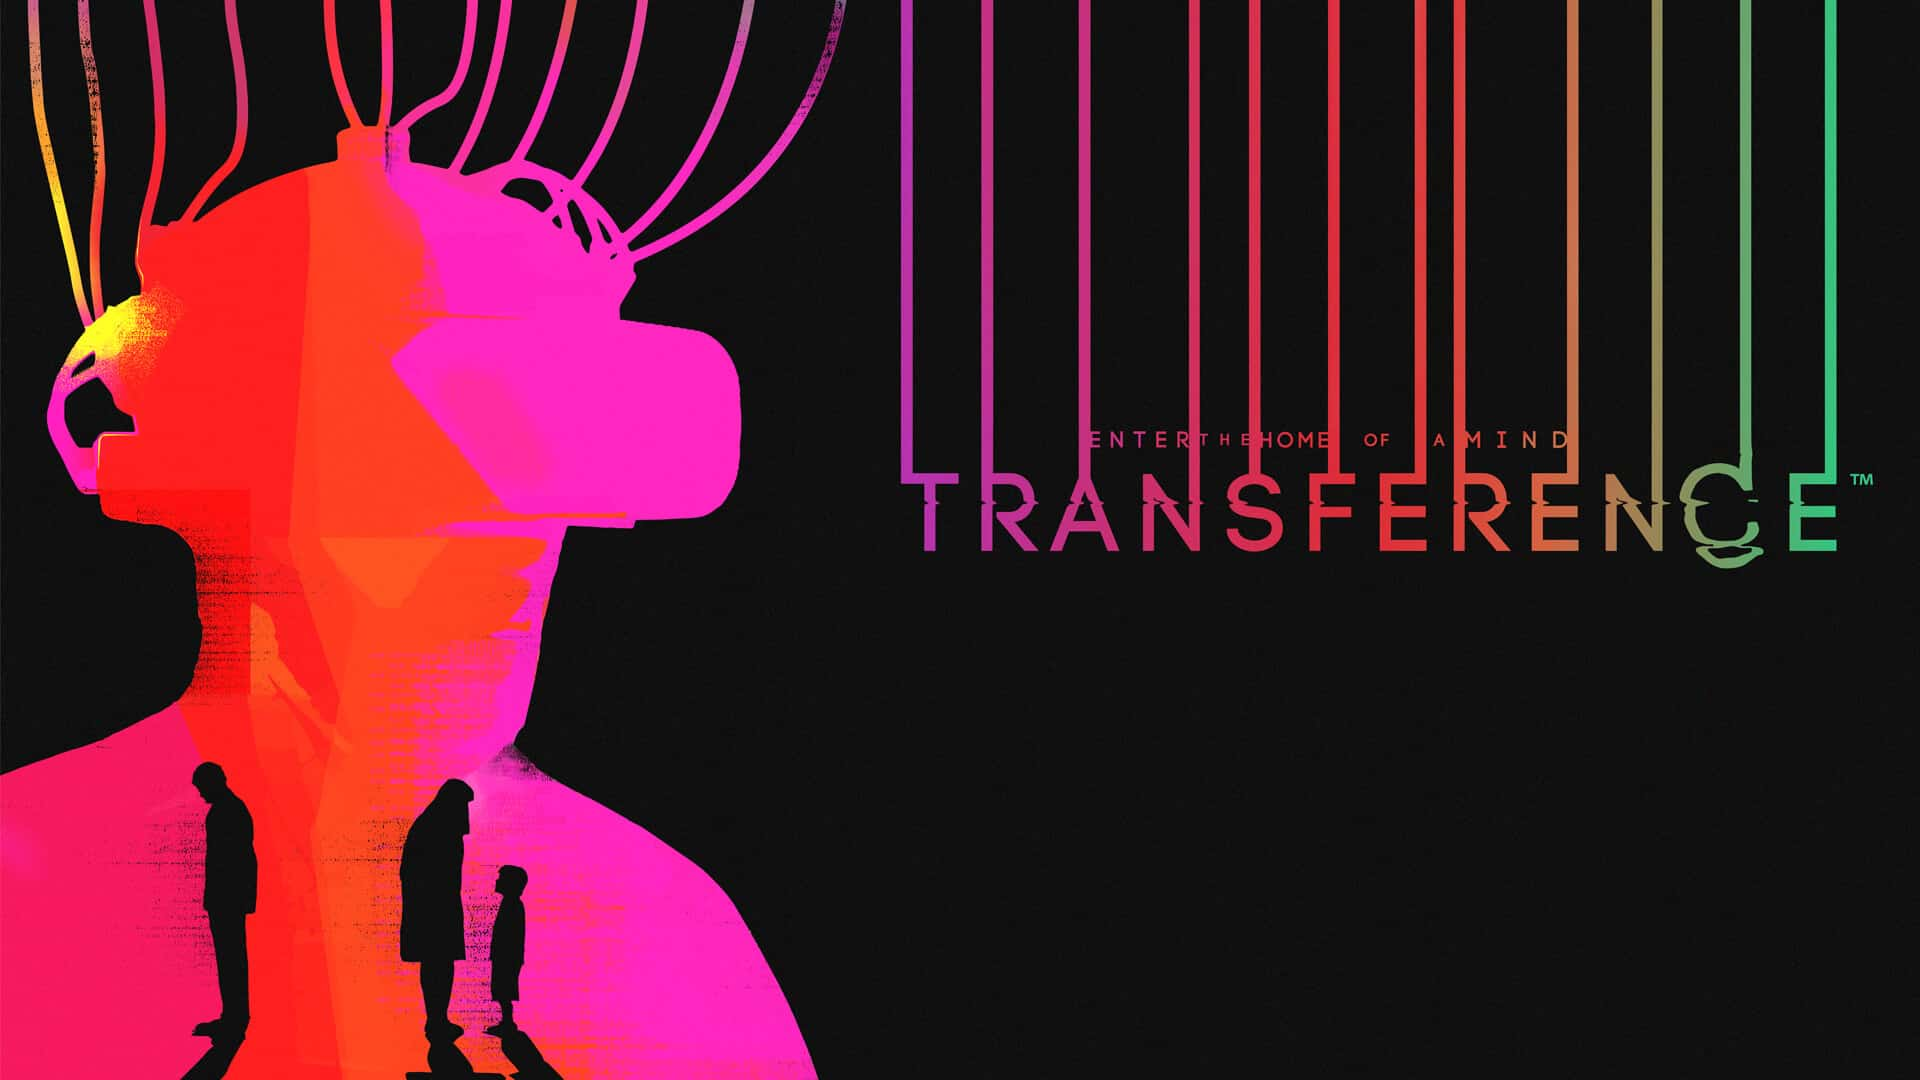 Transference - Análise / Review